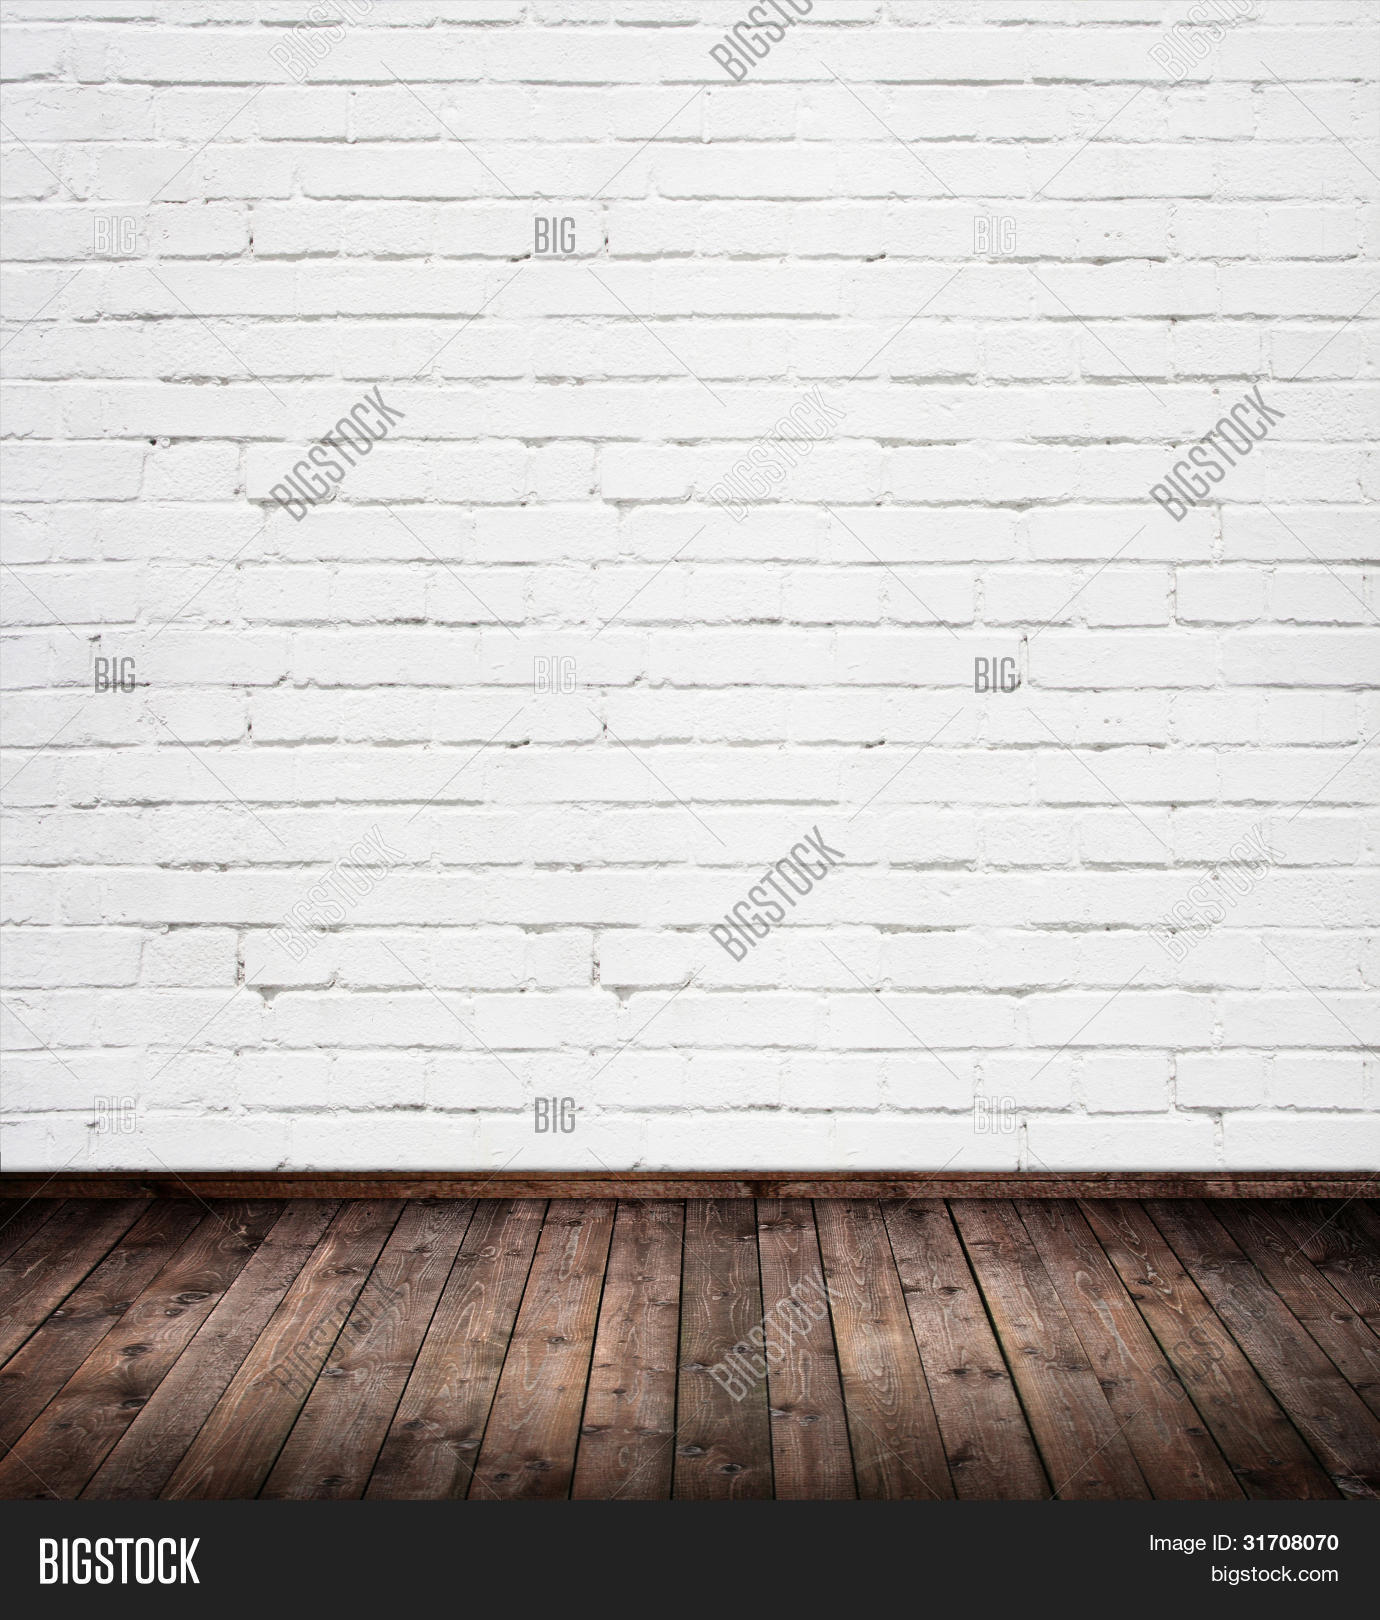 two and image window floor bedroom a white bed shutterstock corner with large photo interior gray wooden illustration of brick stock